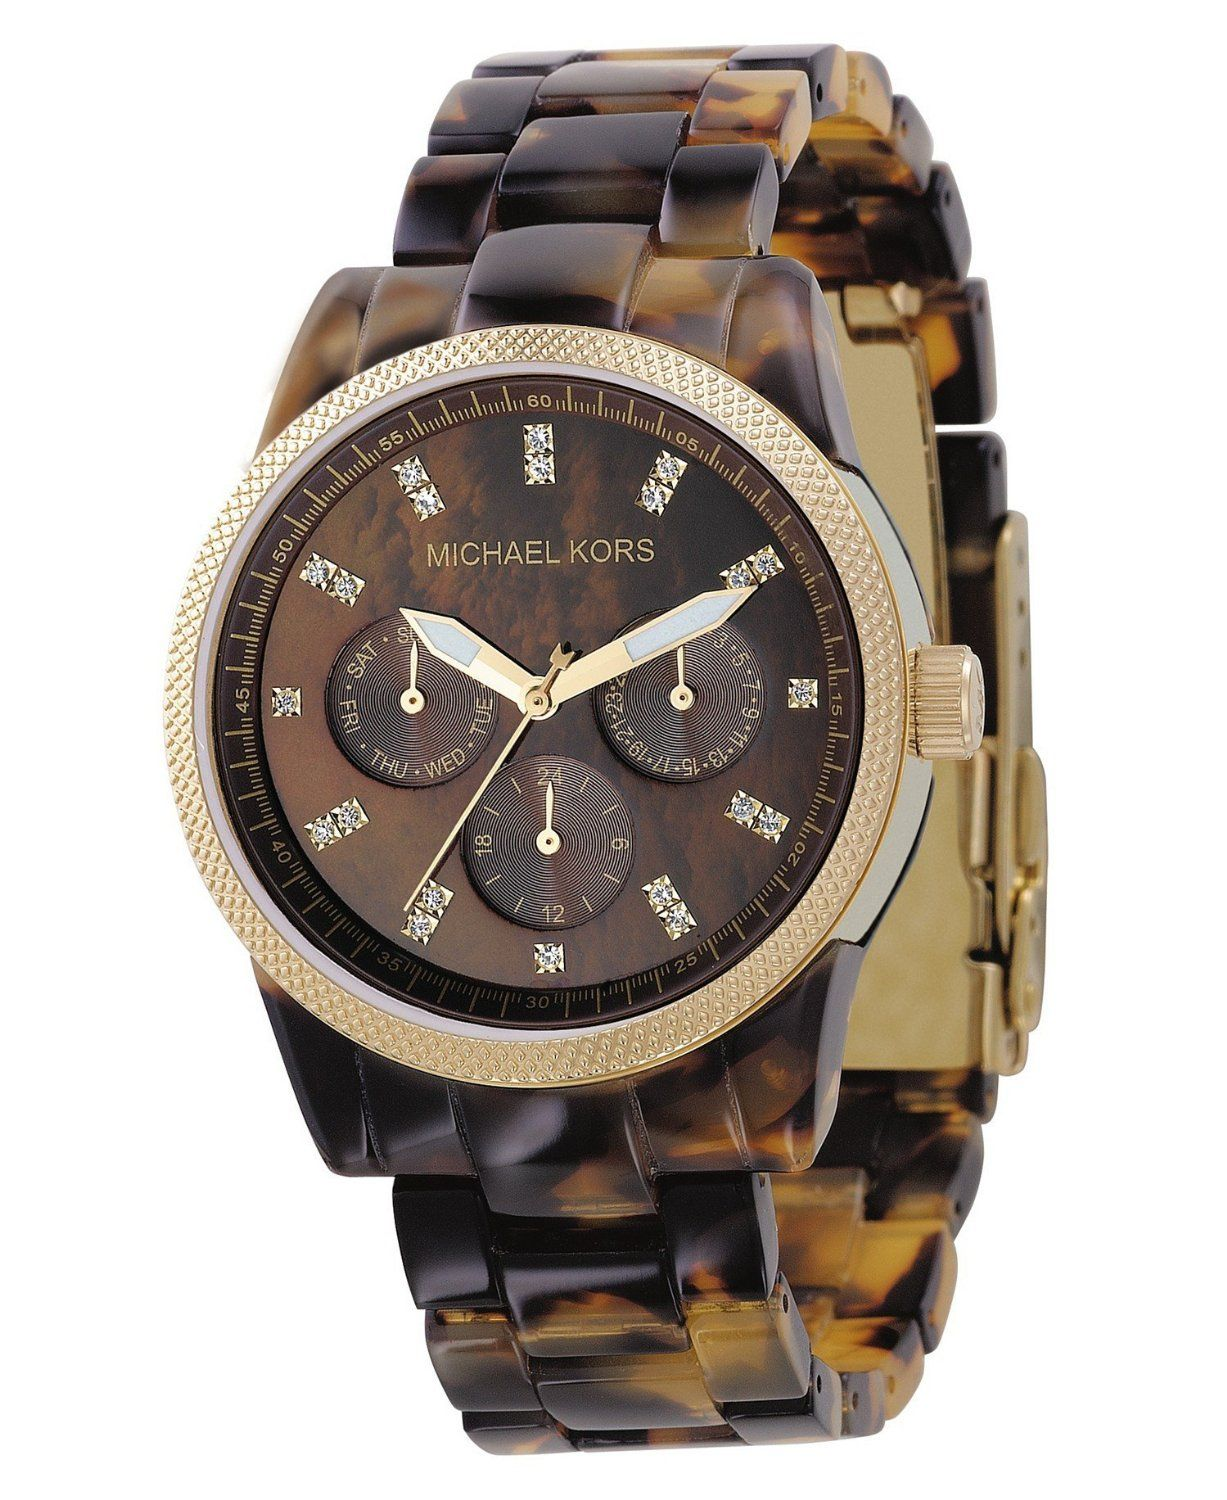 I have been coveting a michael kors tortoise shell watch for some time